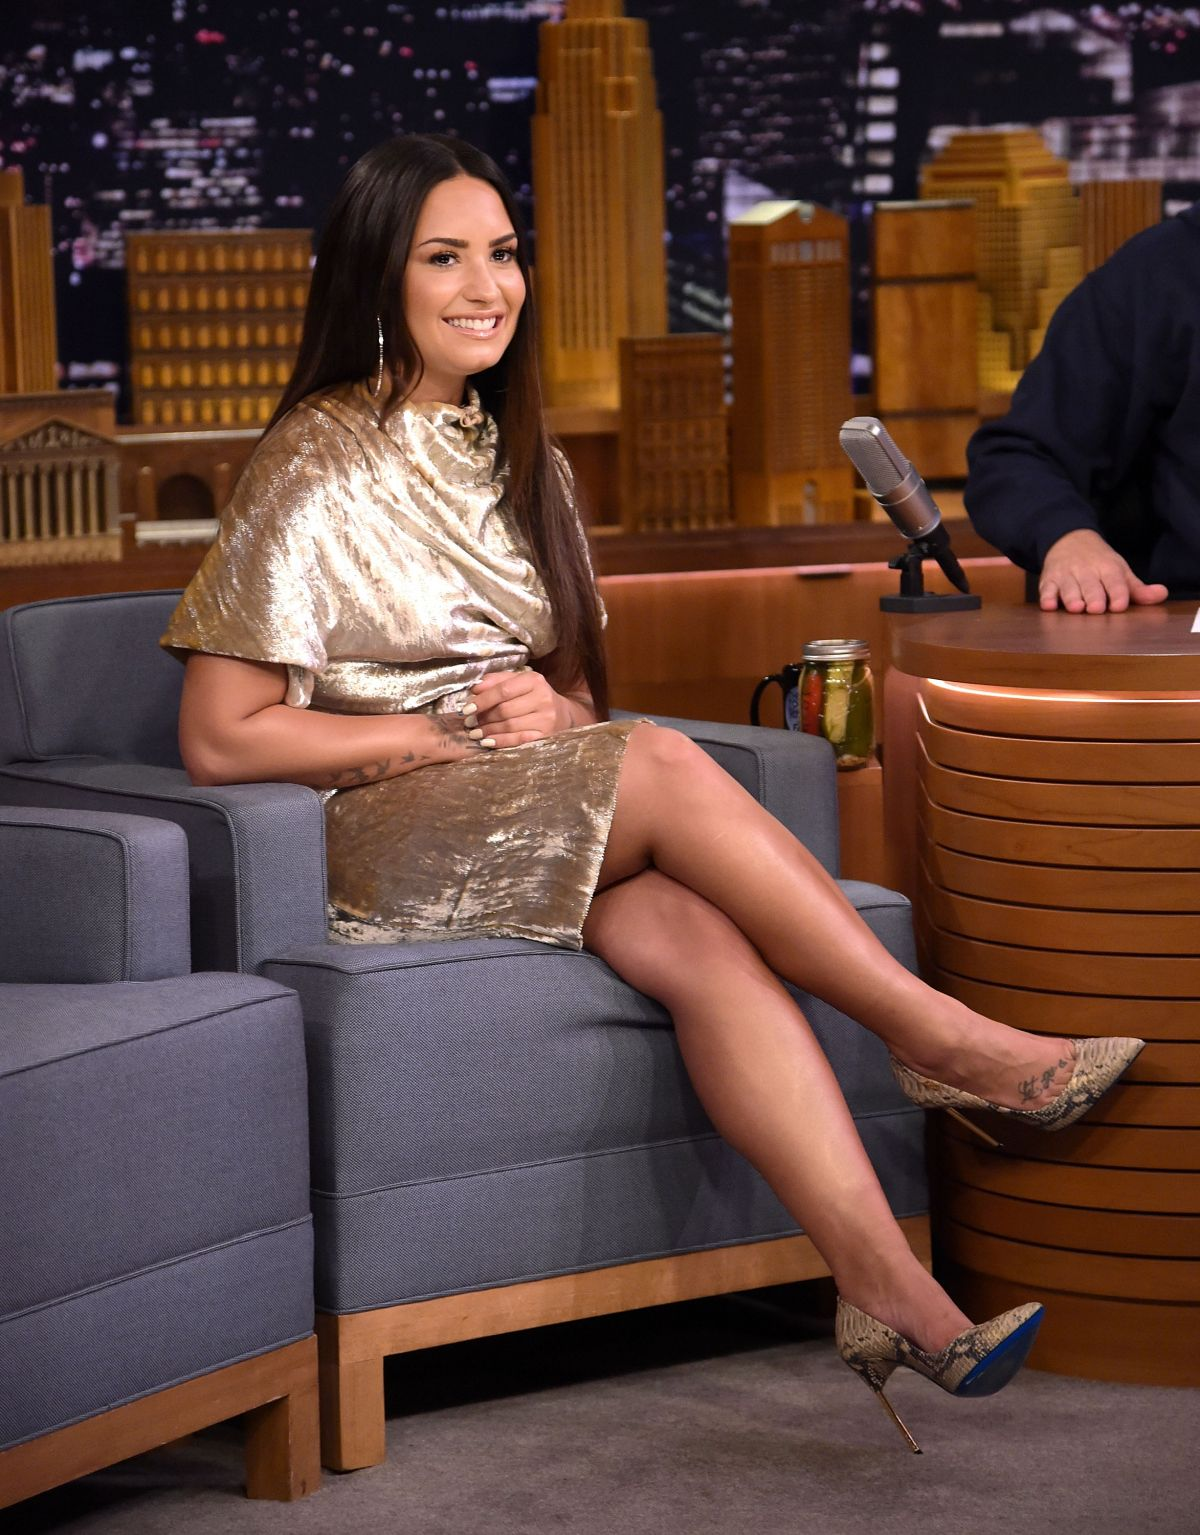 Demi Lovato At 'The Tonight Show Starring Jimmy Fallon' at Rockefeller Center in New York   demi-lovato-at-the-tonight-show-starring-jimmy-fallon-at-rockefeller-center-in-new-york_3